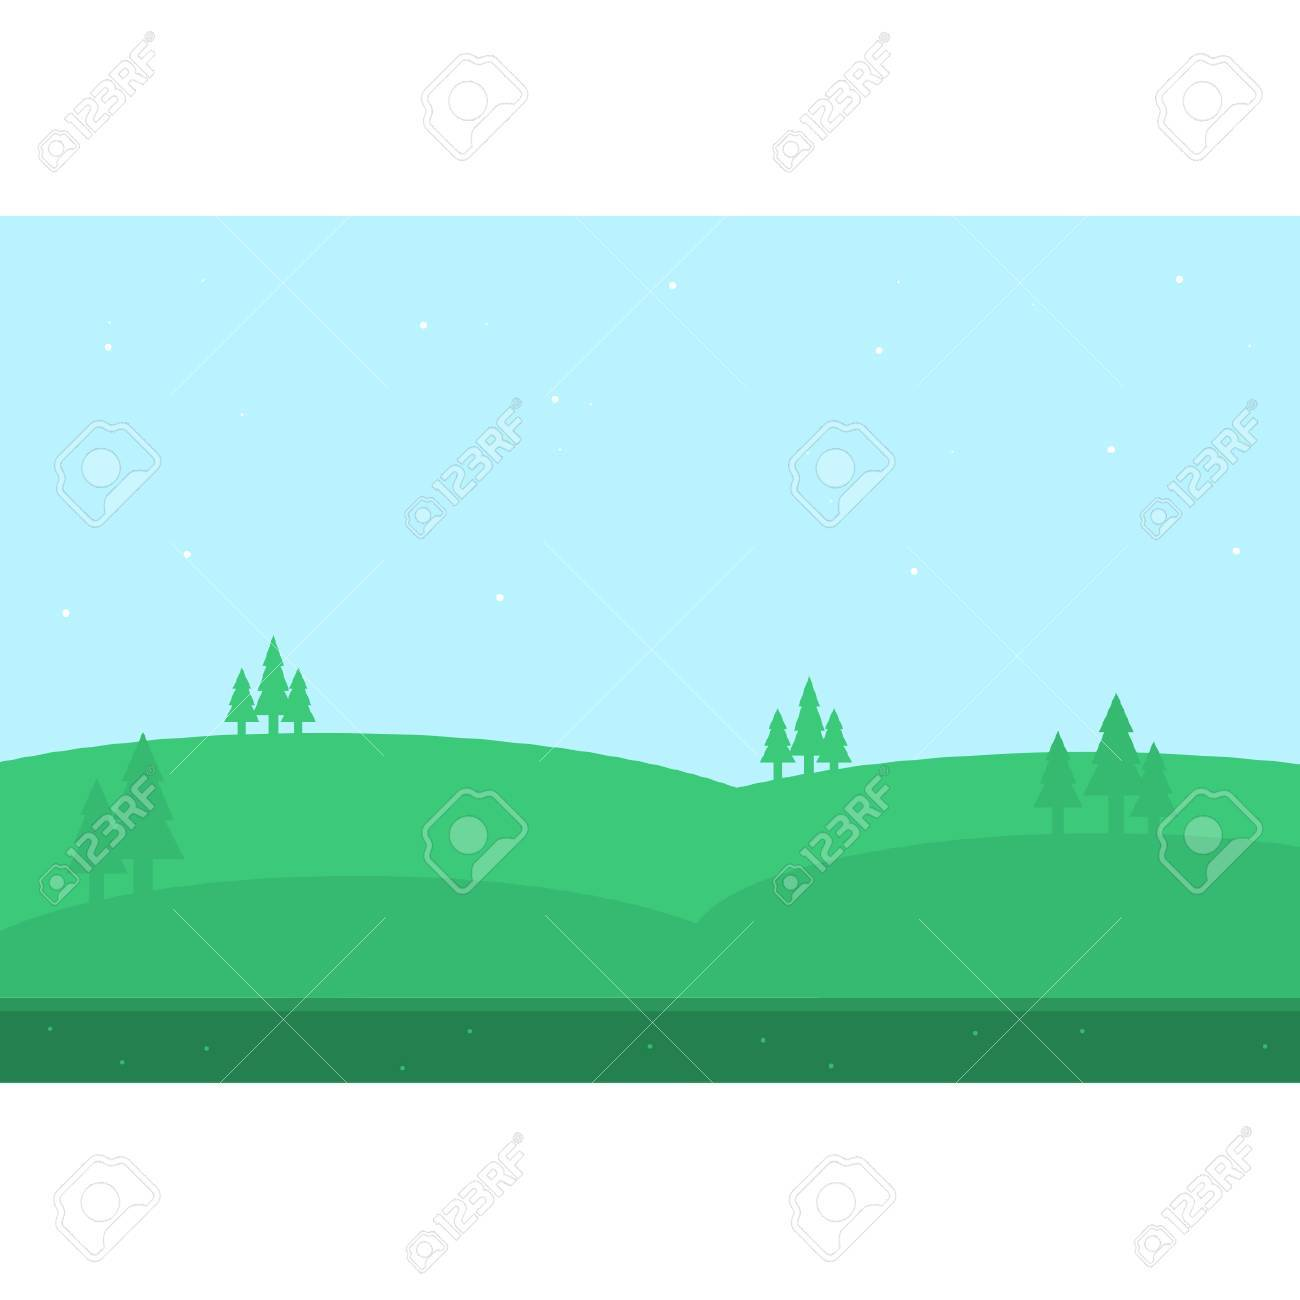 beautiful hill of silhouettes for game backgrounds royalty free